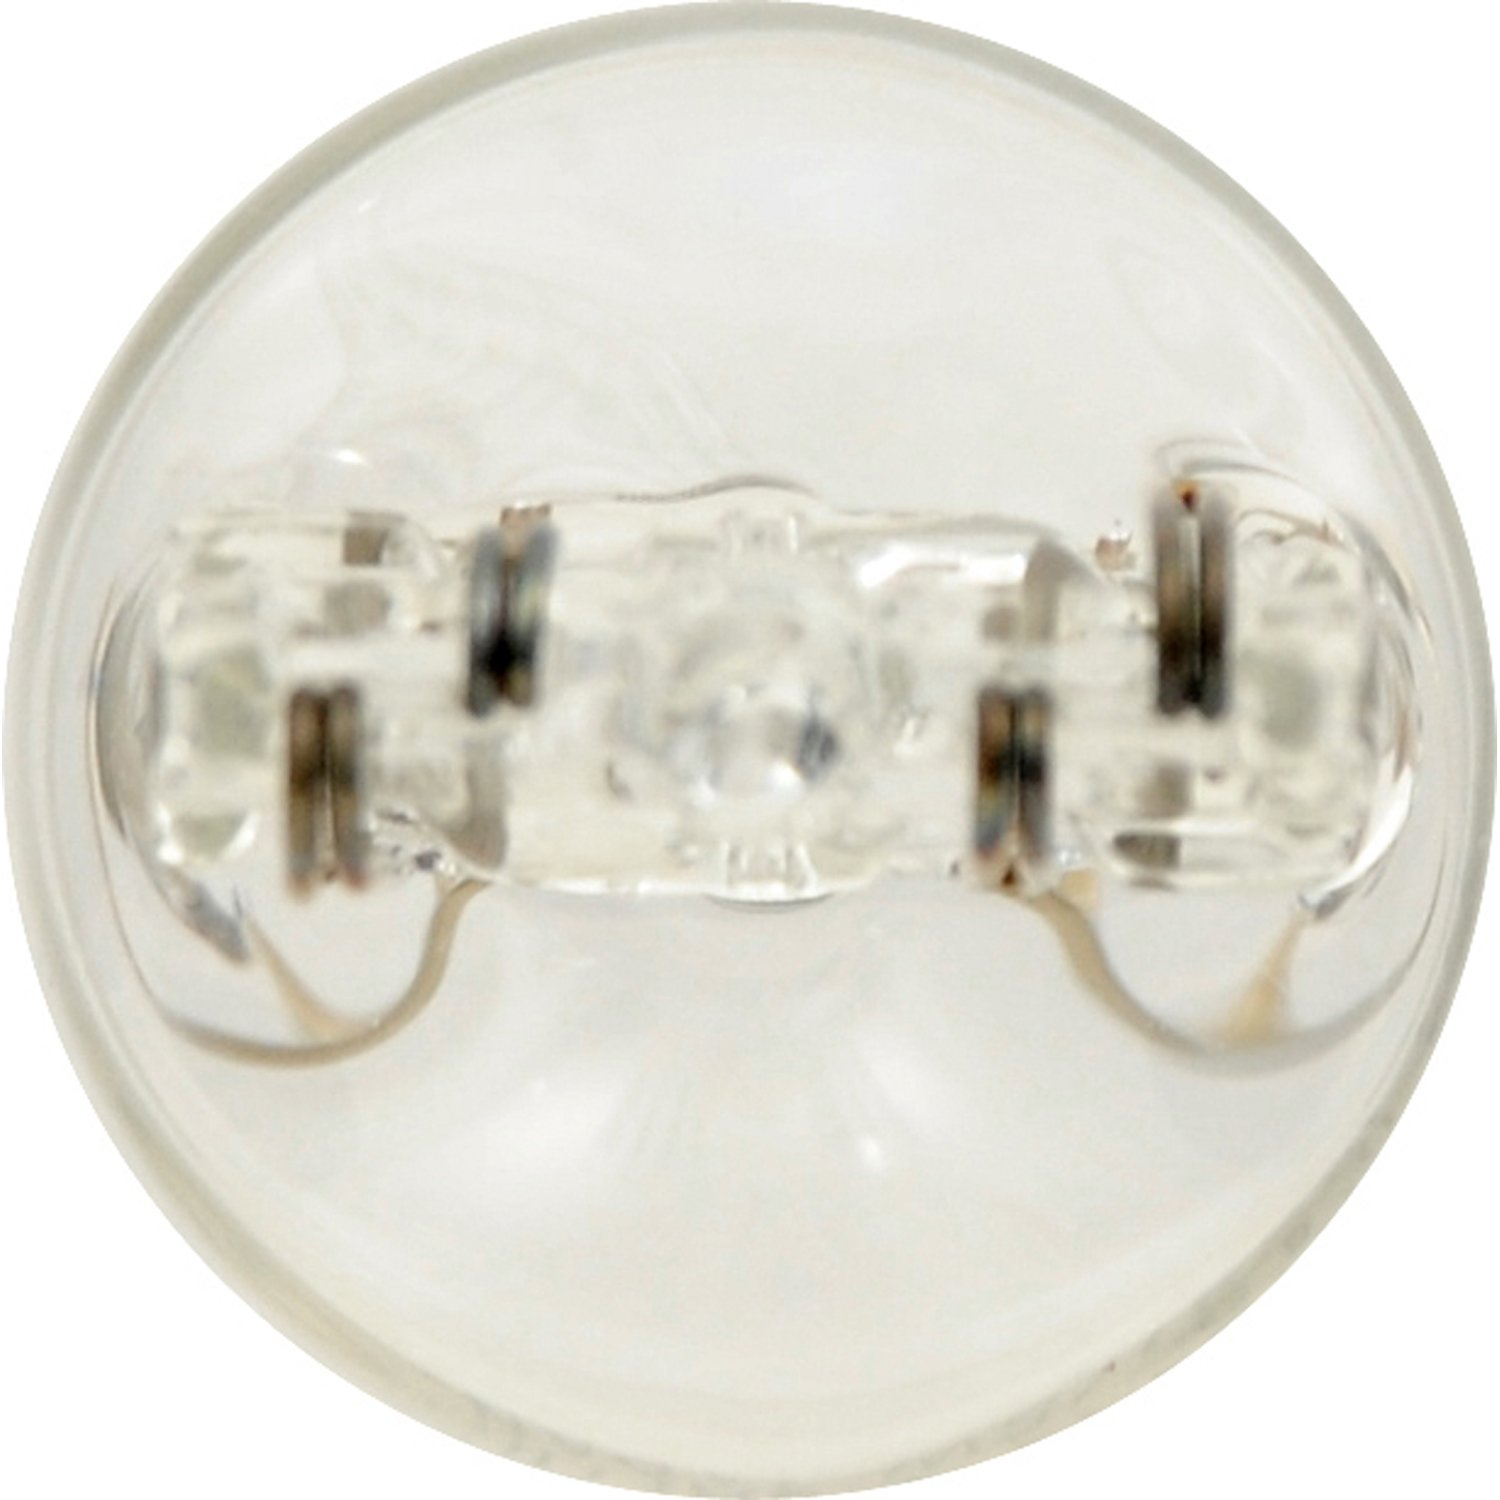 7443 T20 ZEVO LED Red Bulb Contains 2 Bulbs Bright LED Bulb SYLVANIA Ideal for Stop and Tail Lights